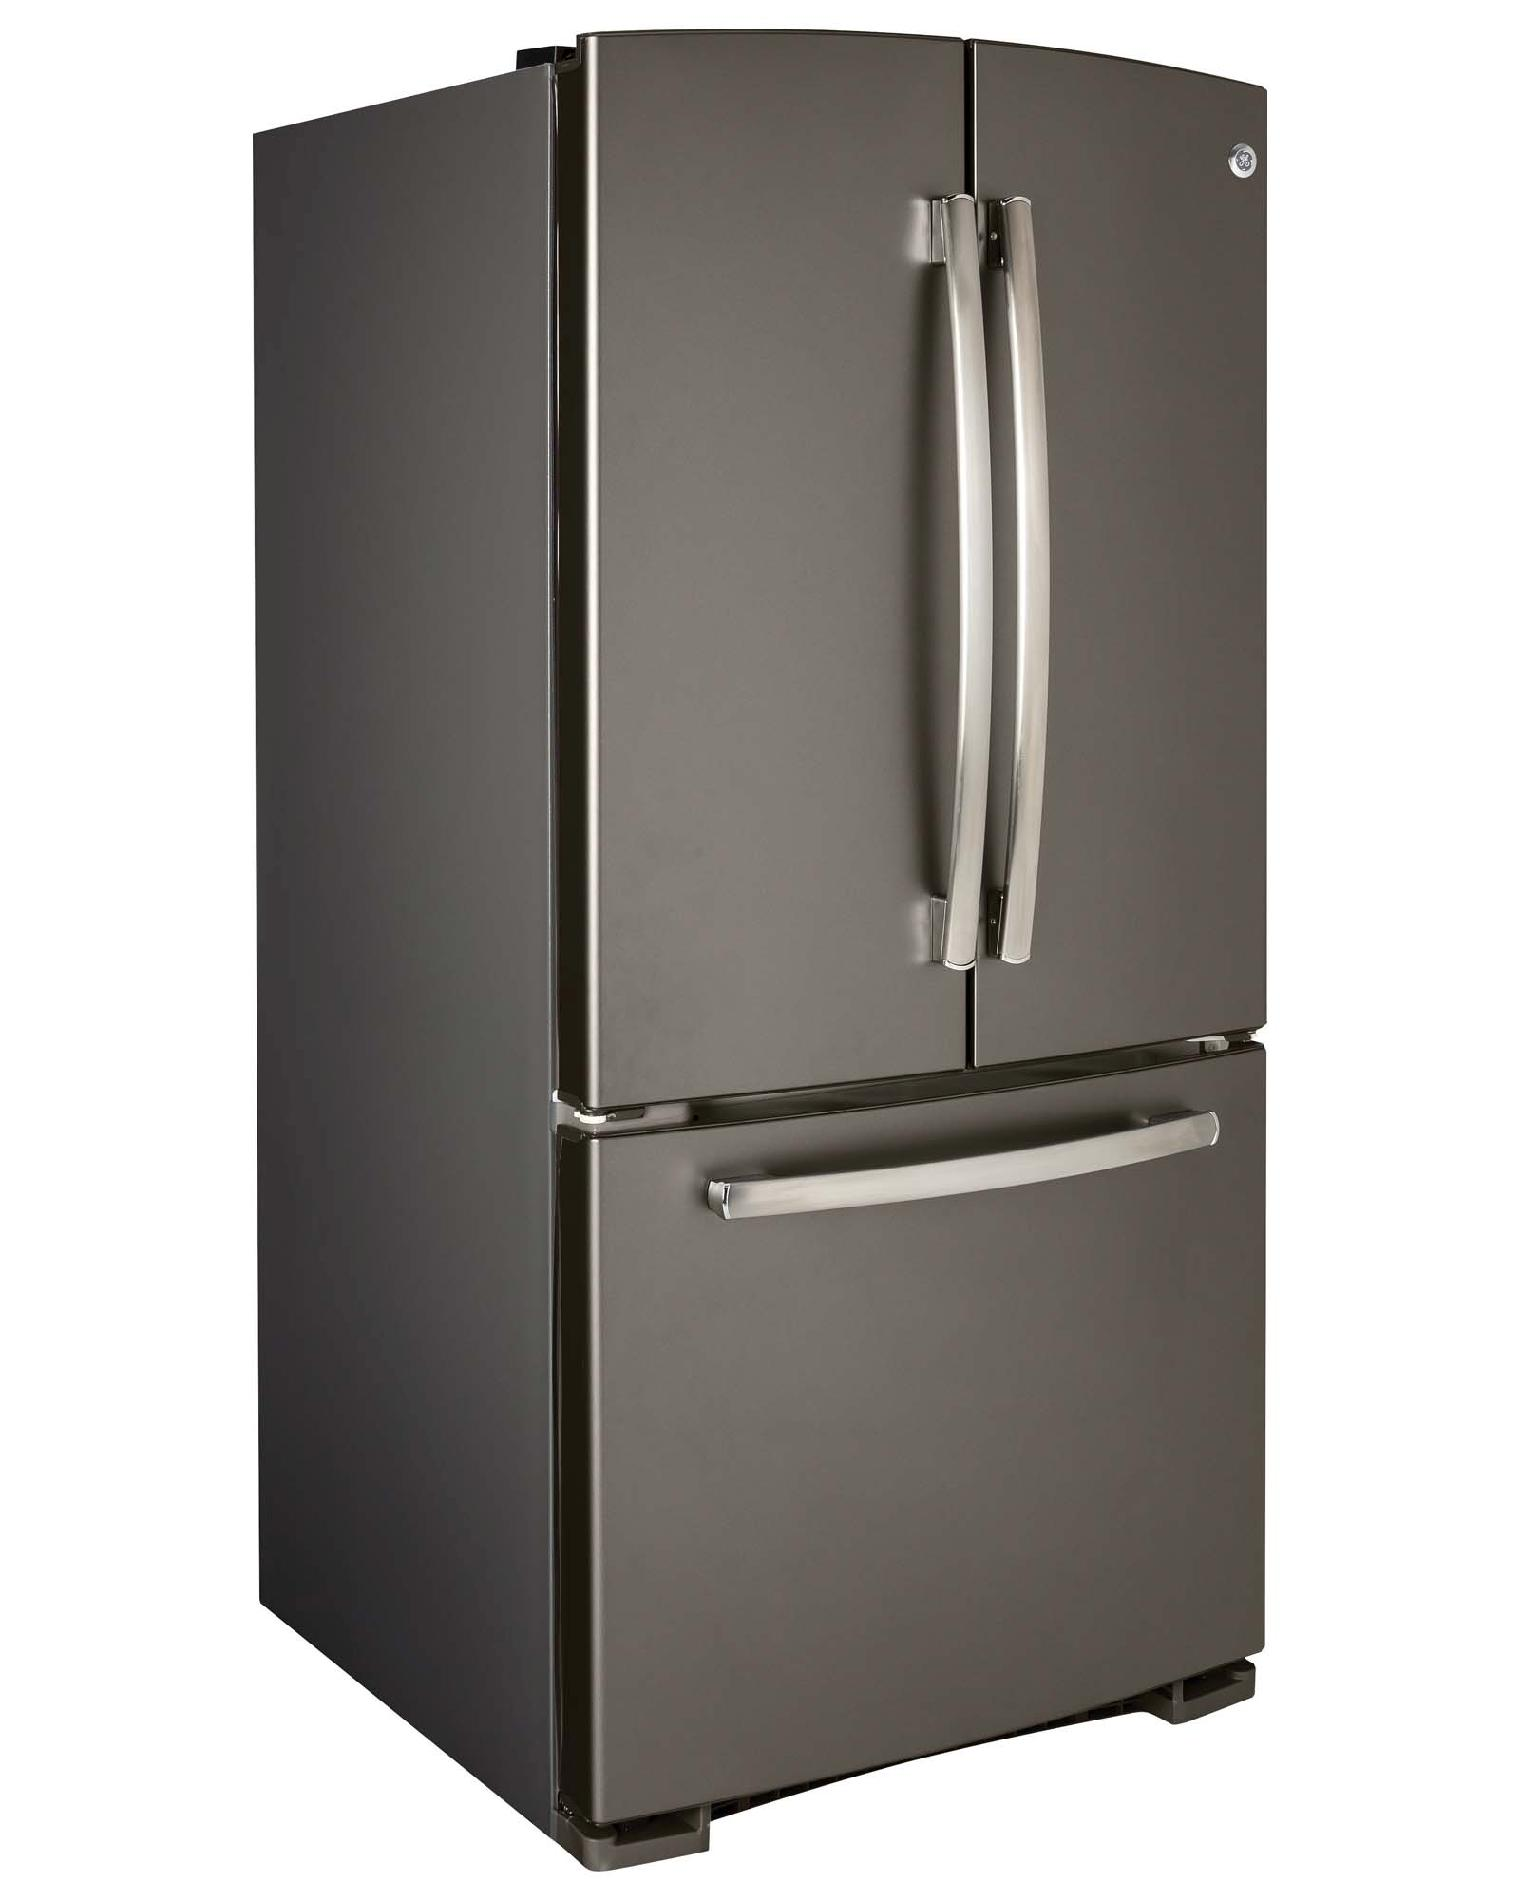 GE 22.1 cu. ft. French Door Bottom-Freezer Refrigerator - Slate